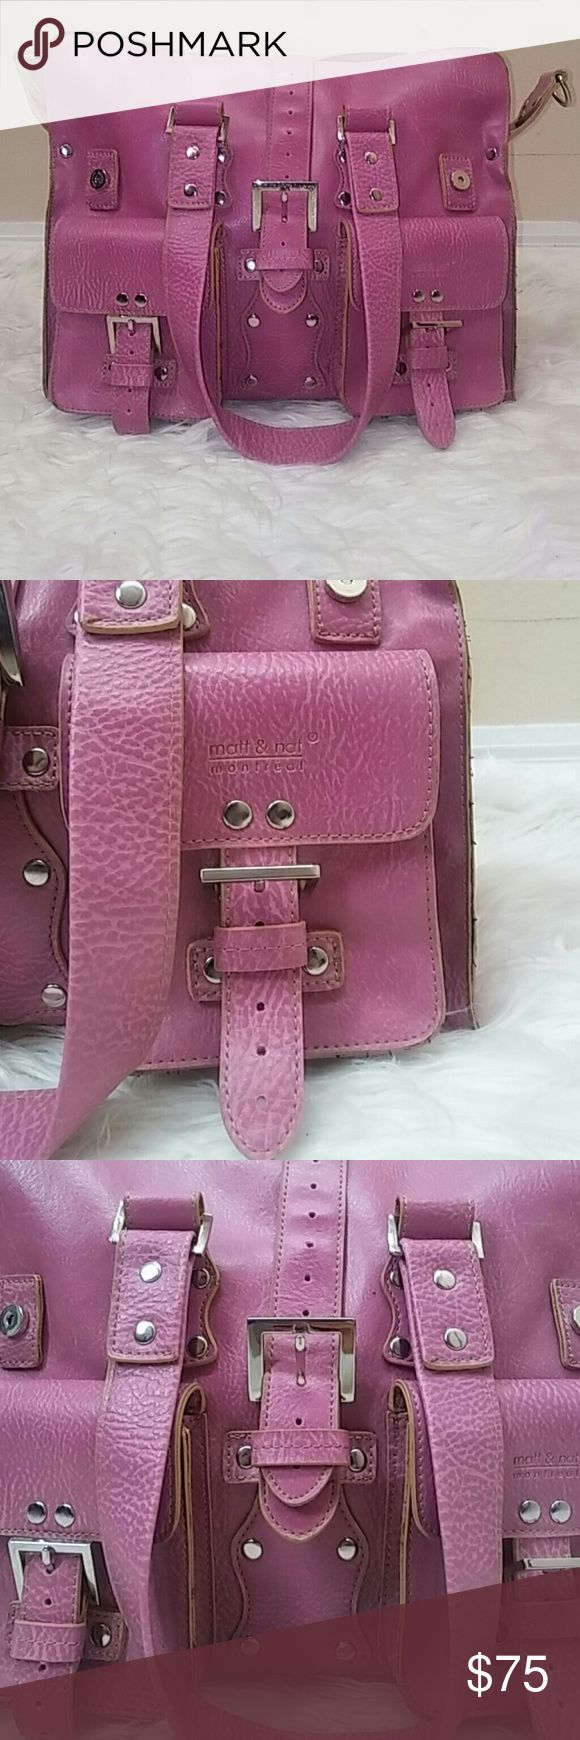 Gorgeous dusty rose matt and nat satchel bag Perfect condition besides the missing shoulder strap. Super clean and a gorgeous dusty rose color. Silver hardwear and lots of pockets and storage! Matt & Nat Bags Satchels